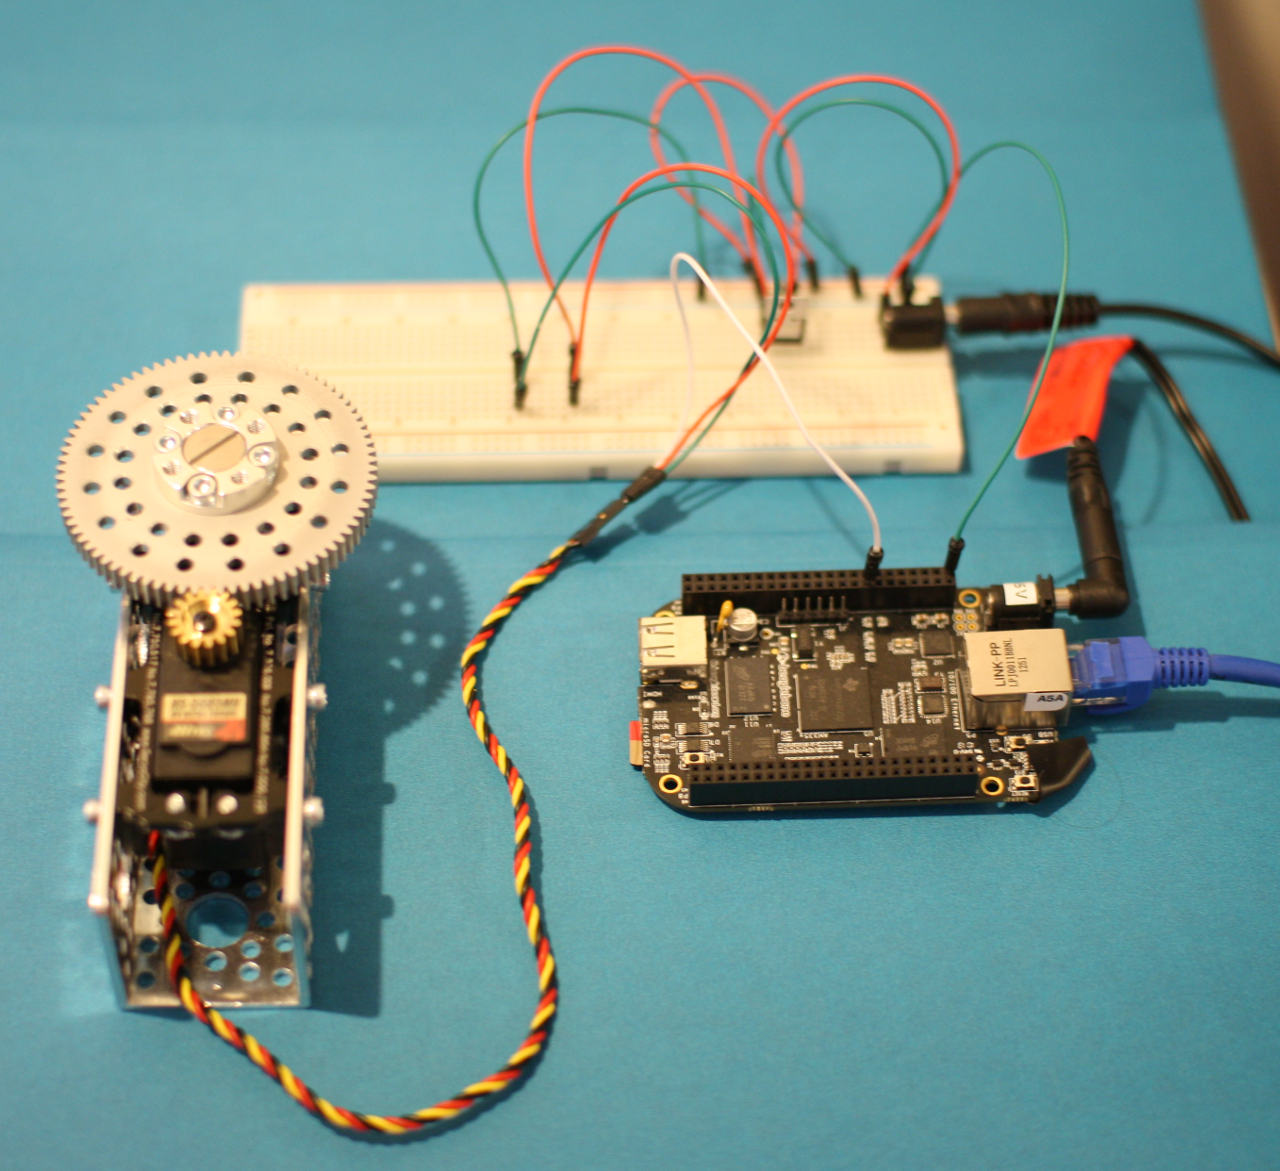 How To Control A Servo Motor From Beaglebone Black On Linux Pic Circuit Anatomy Of